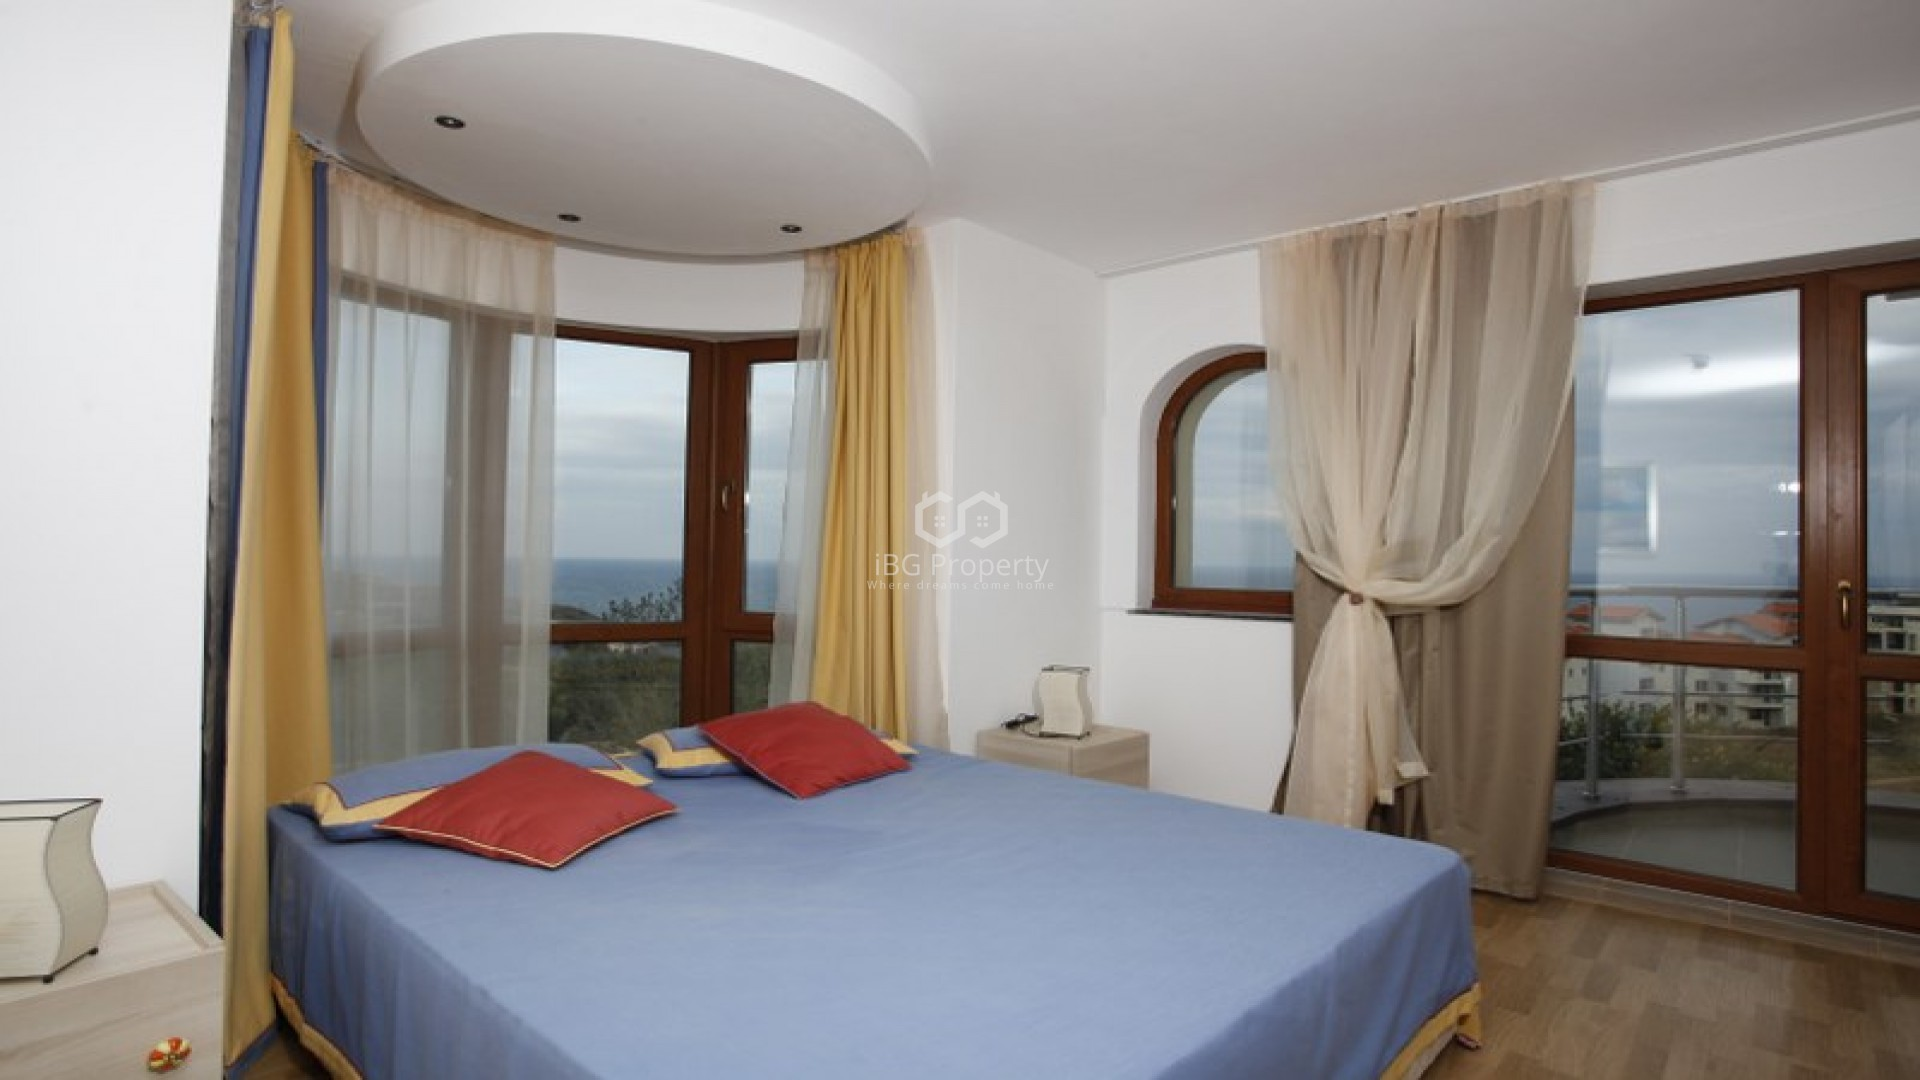 EXCLUSIVE OFFER! One bedroom apartment Byala 75 m2